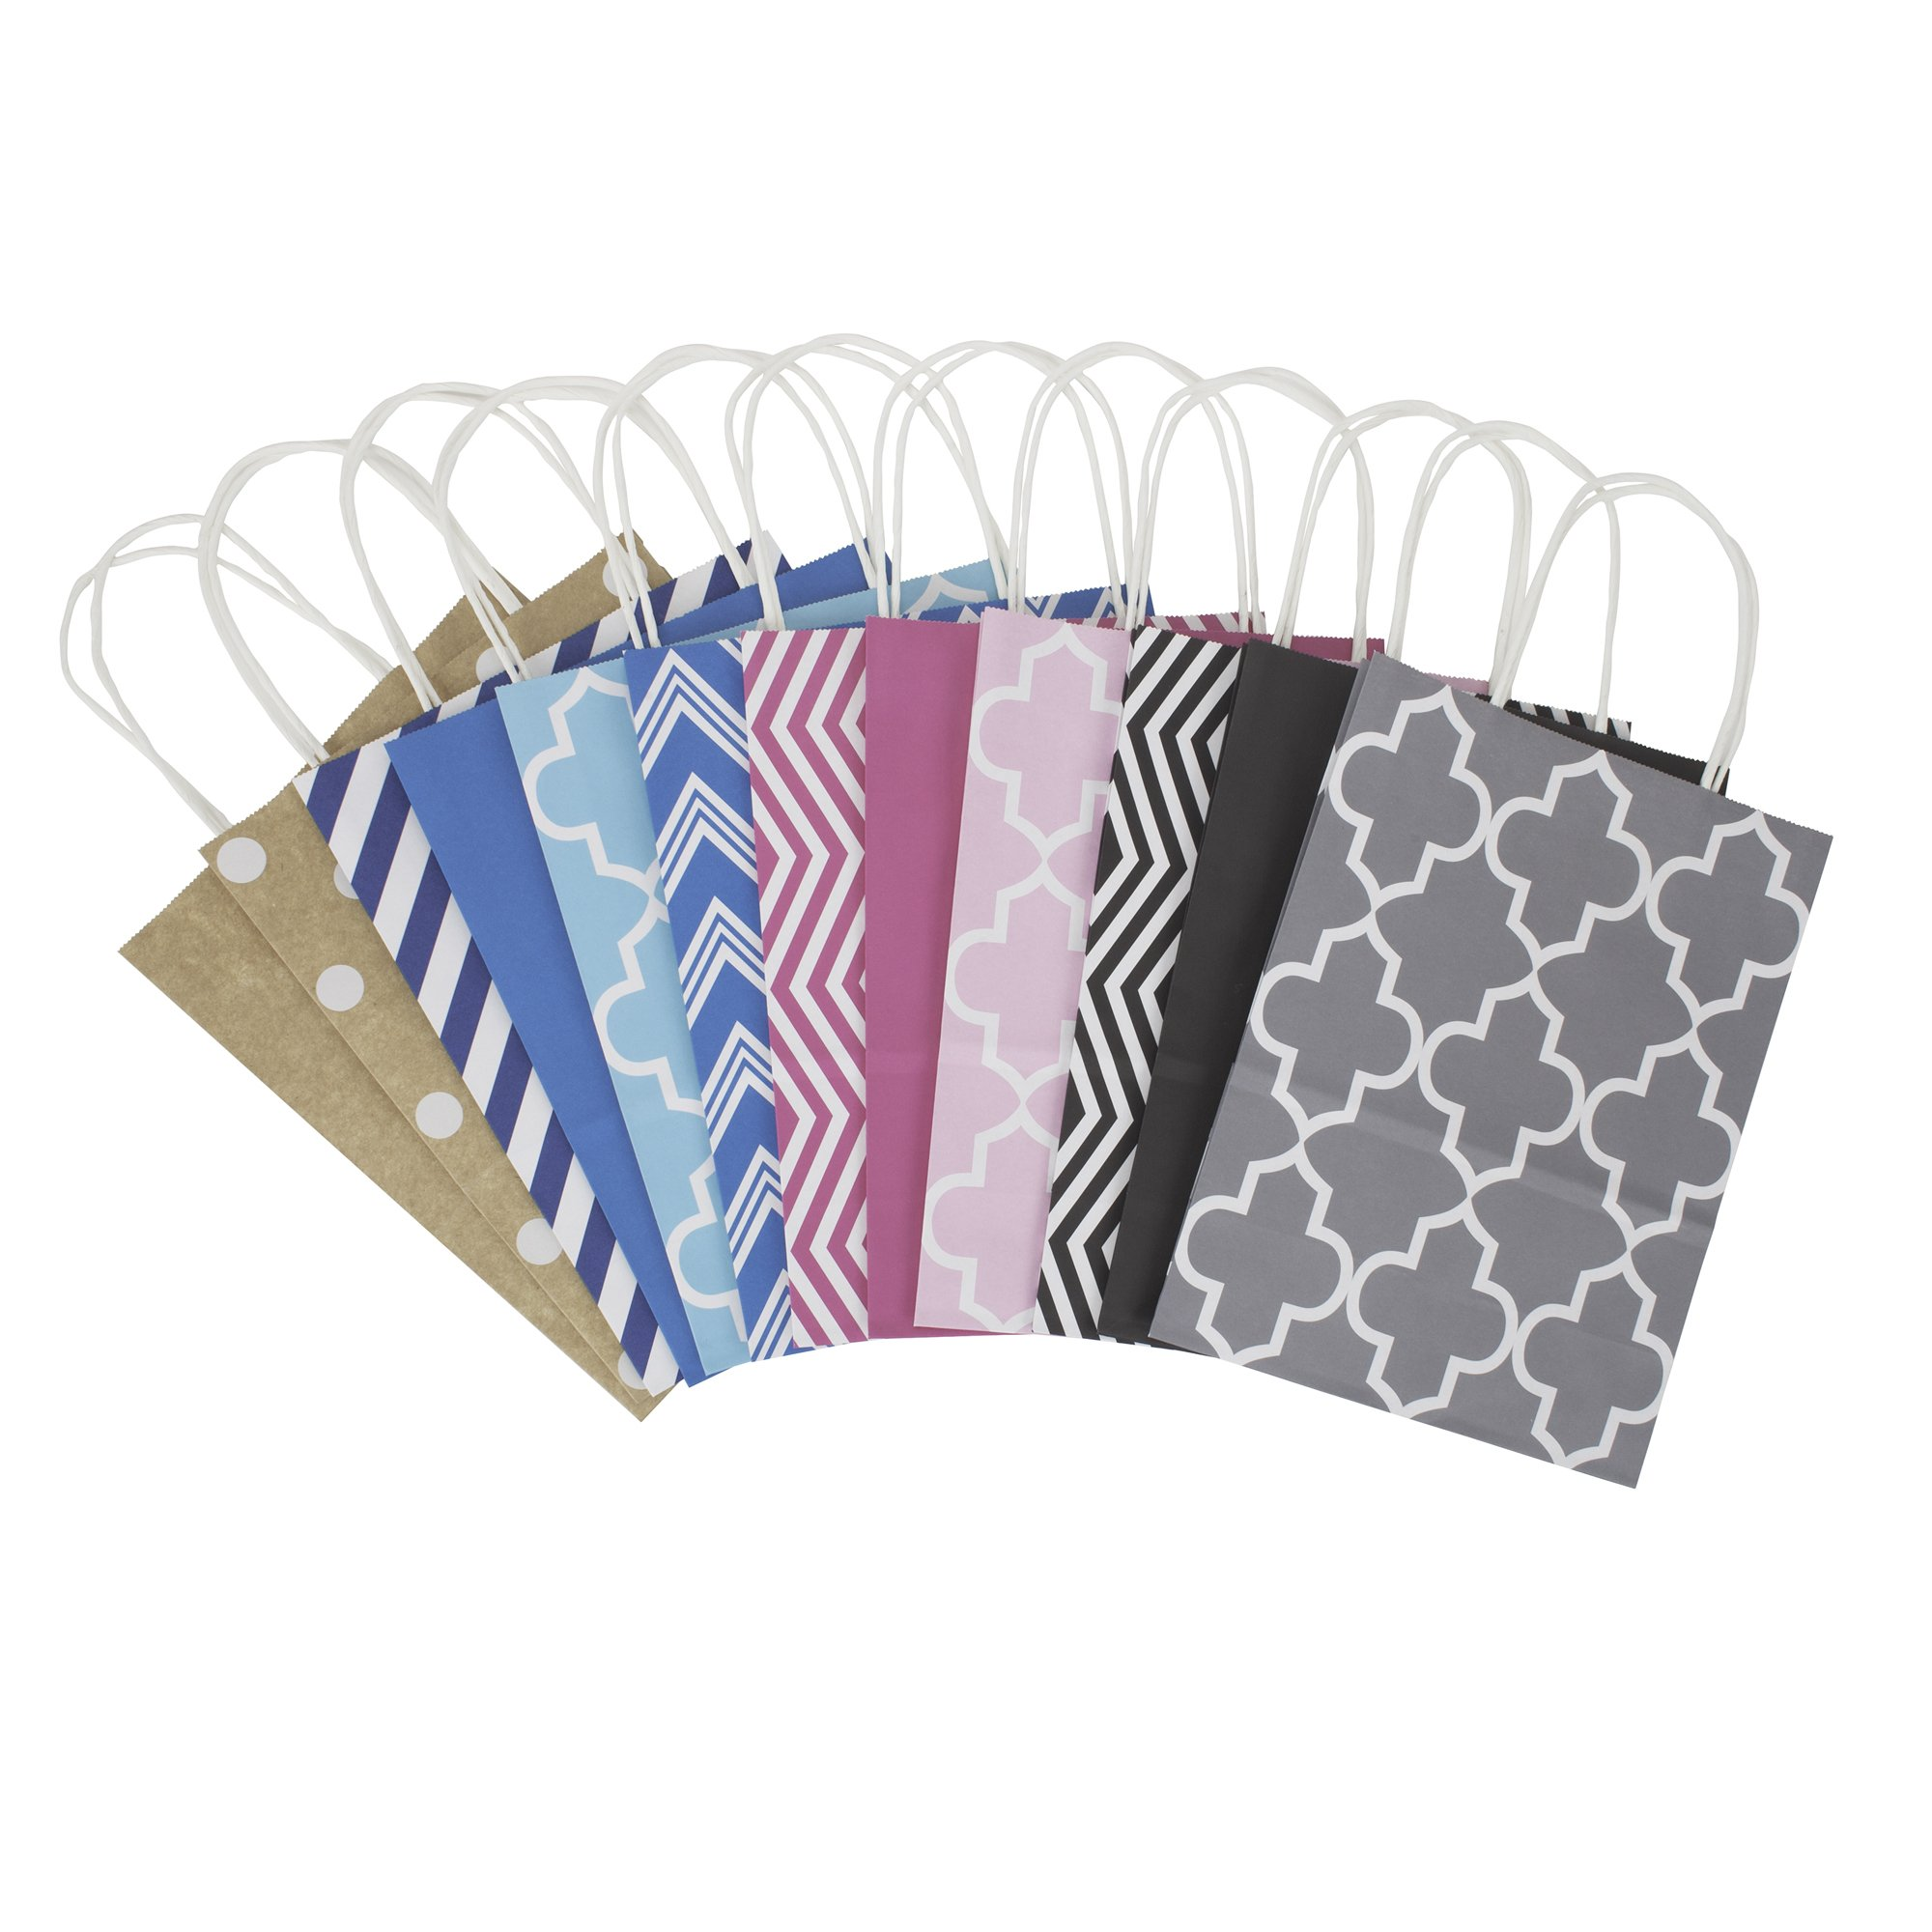 """Hallmark 10"""" Medium Gift Bag Assortment, Pack of 12 in Kraft, Grey, Black, Pink, Blue - Solids and Patterns for Birthdays, Baby Showers, Bridal Showers or Any Occasion"""